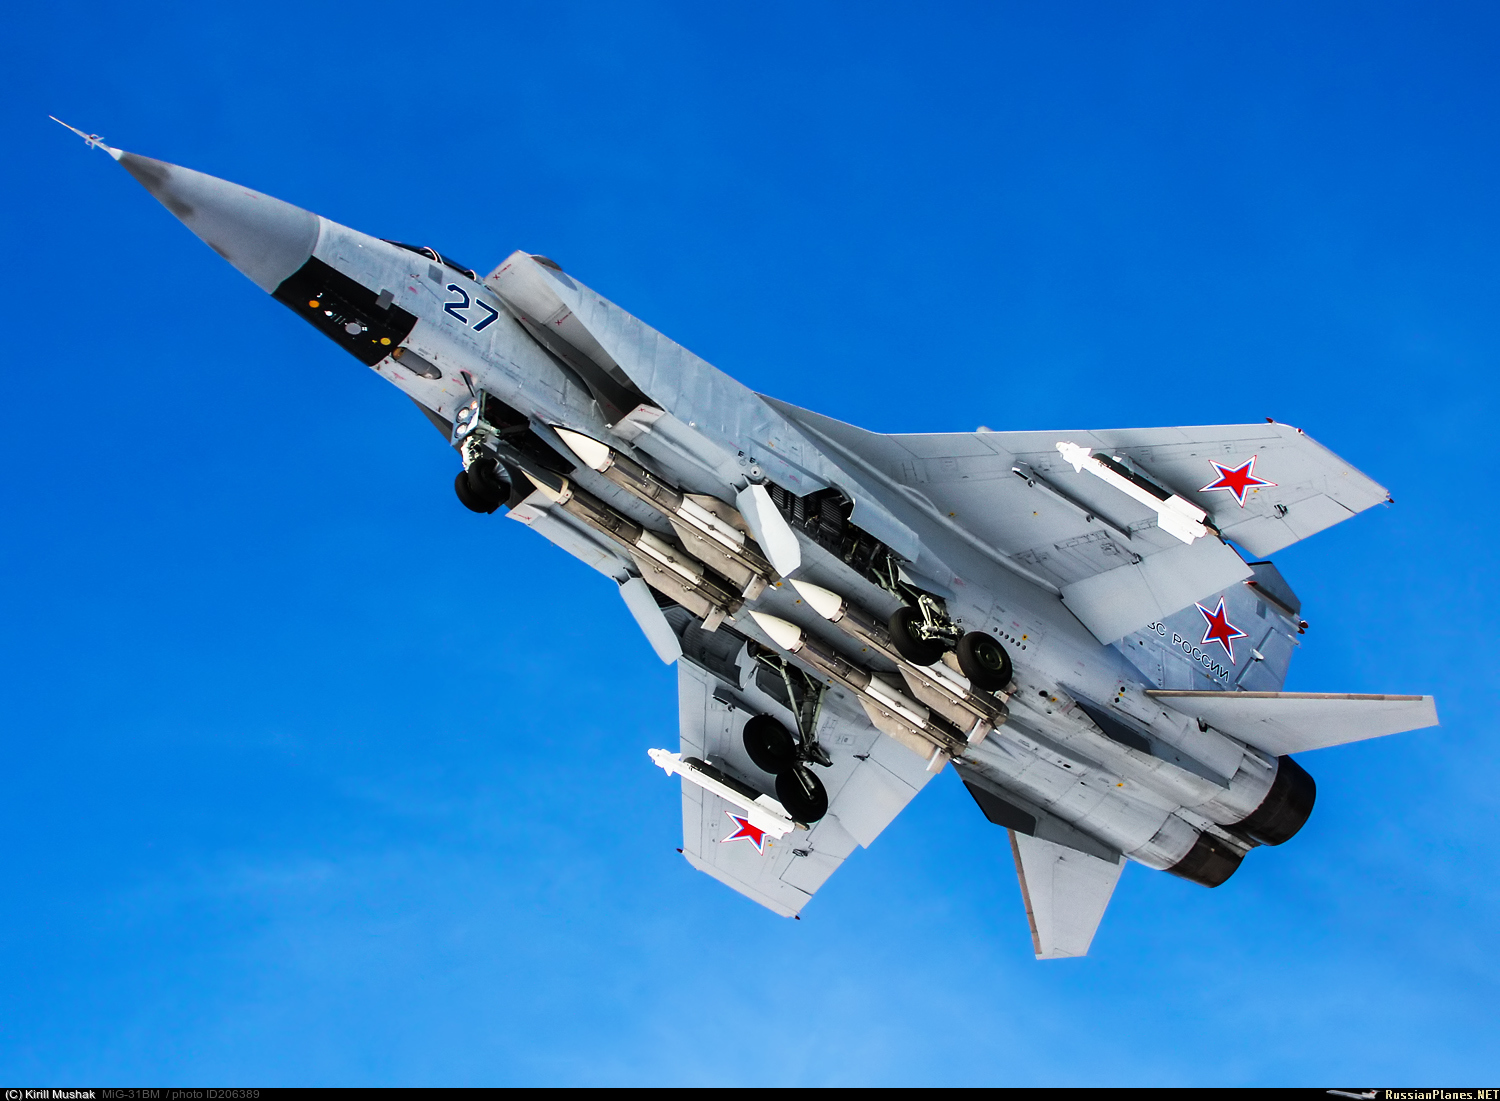 http://russianplanes.net/images/to207000/206389.jpg